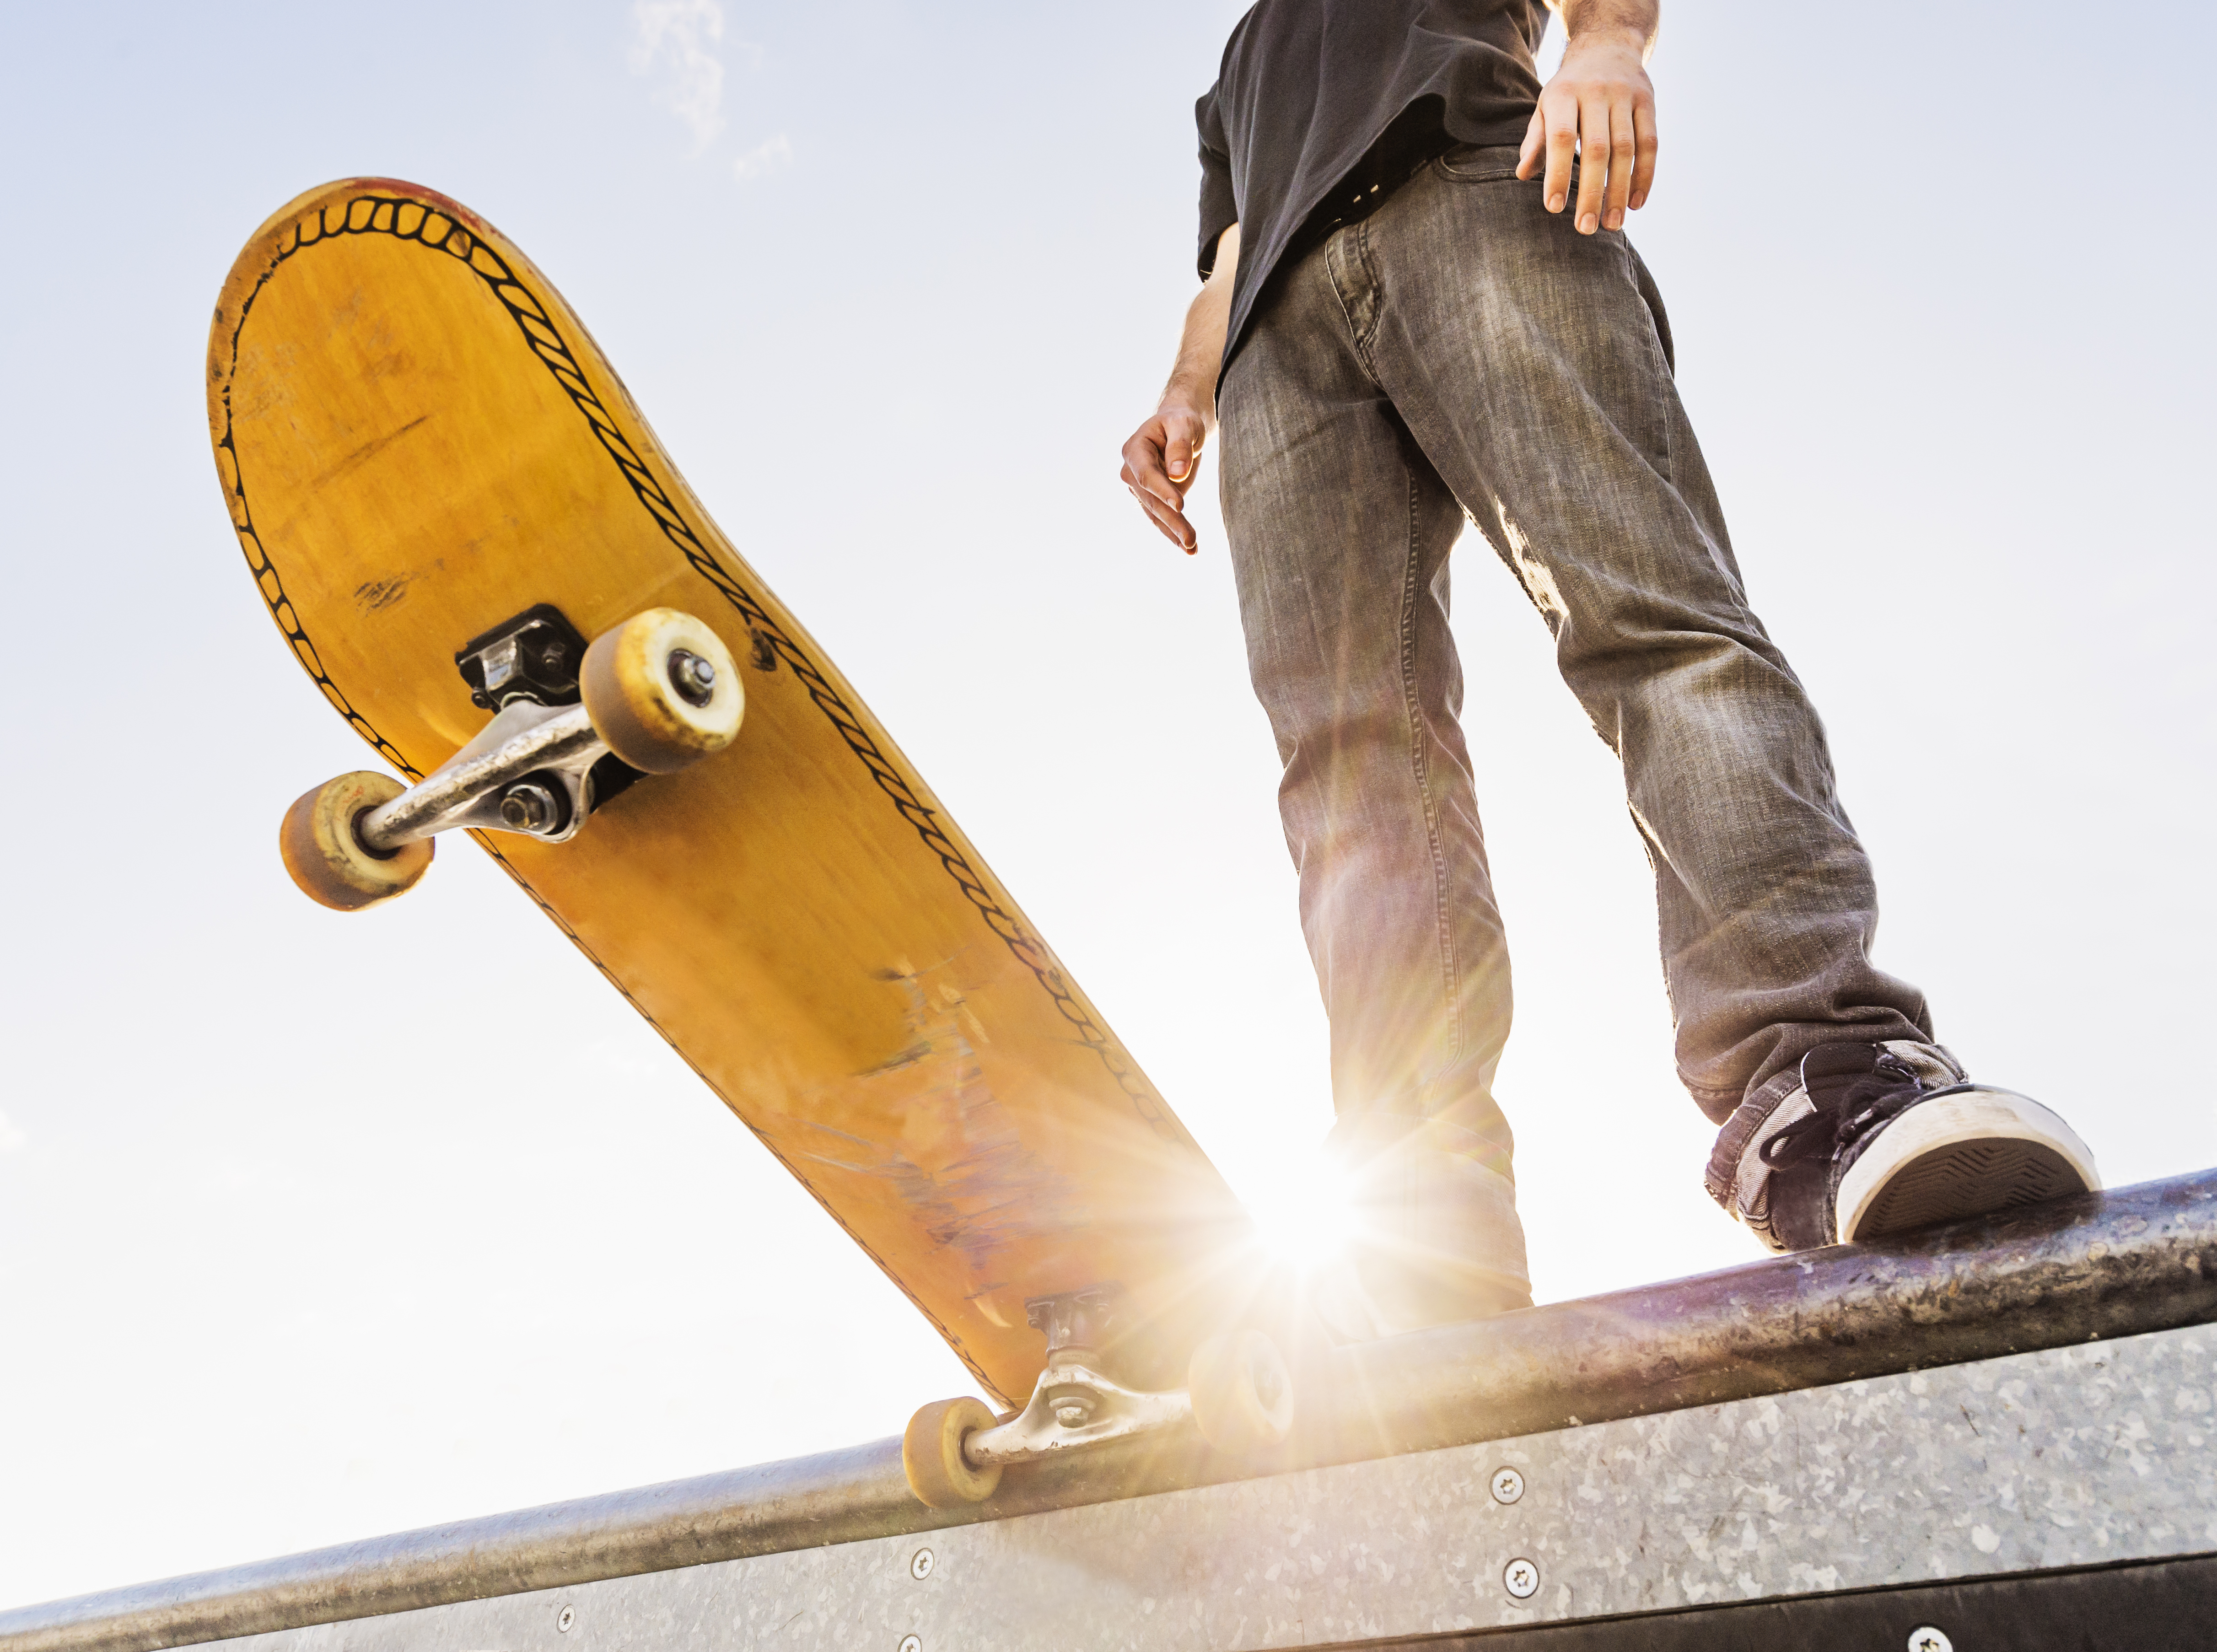 Man with skateboard at the edge of ramp